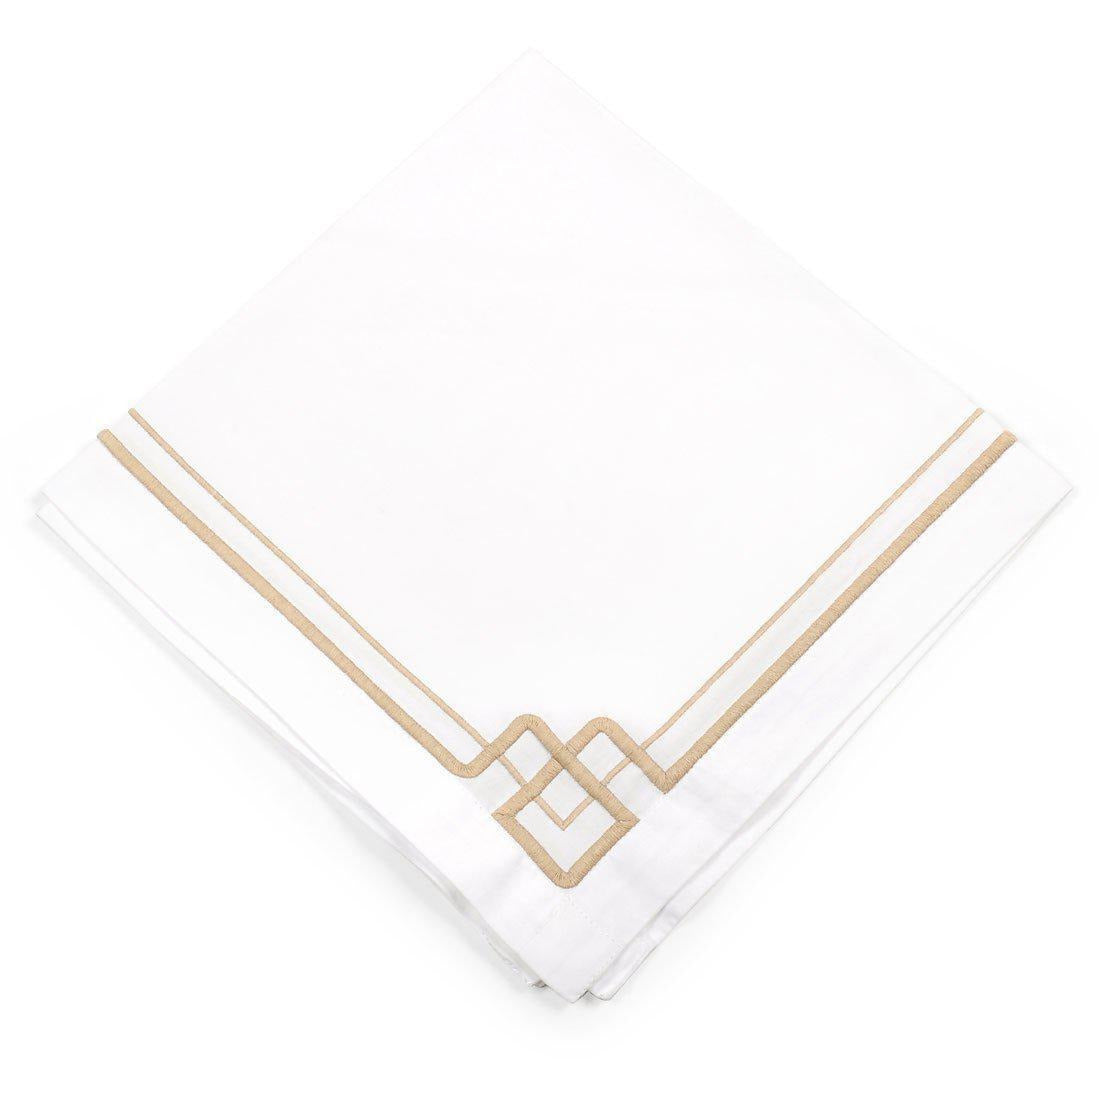 Interlocking Key Dinner Napkins Set of 4 - The Preppy Bunny